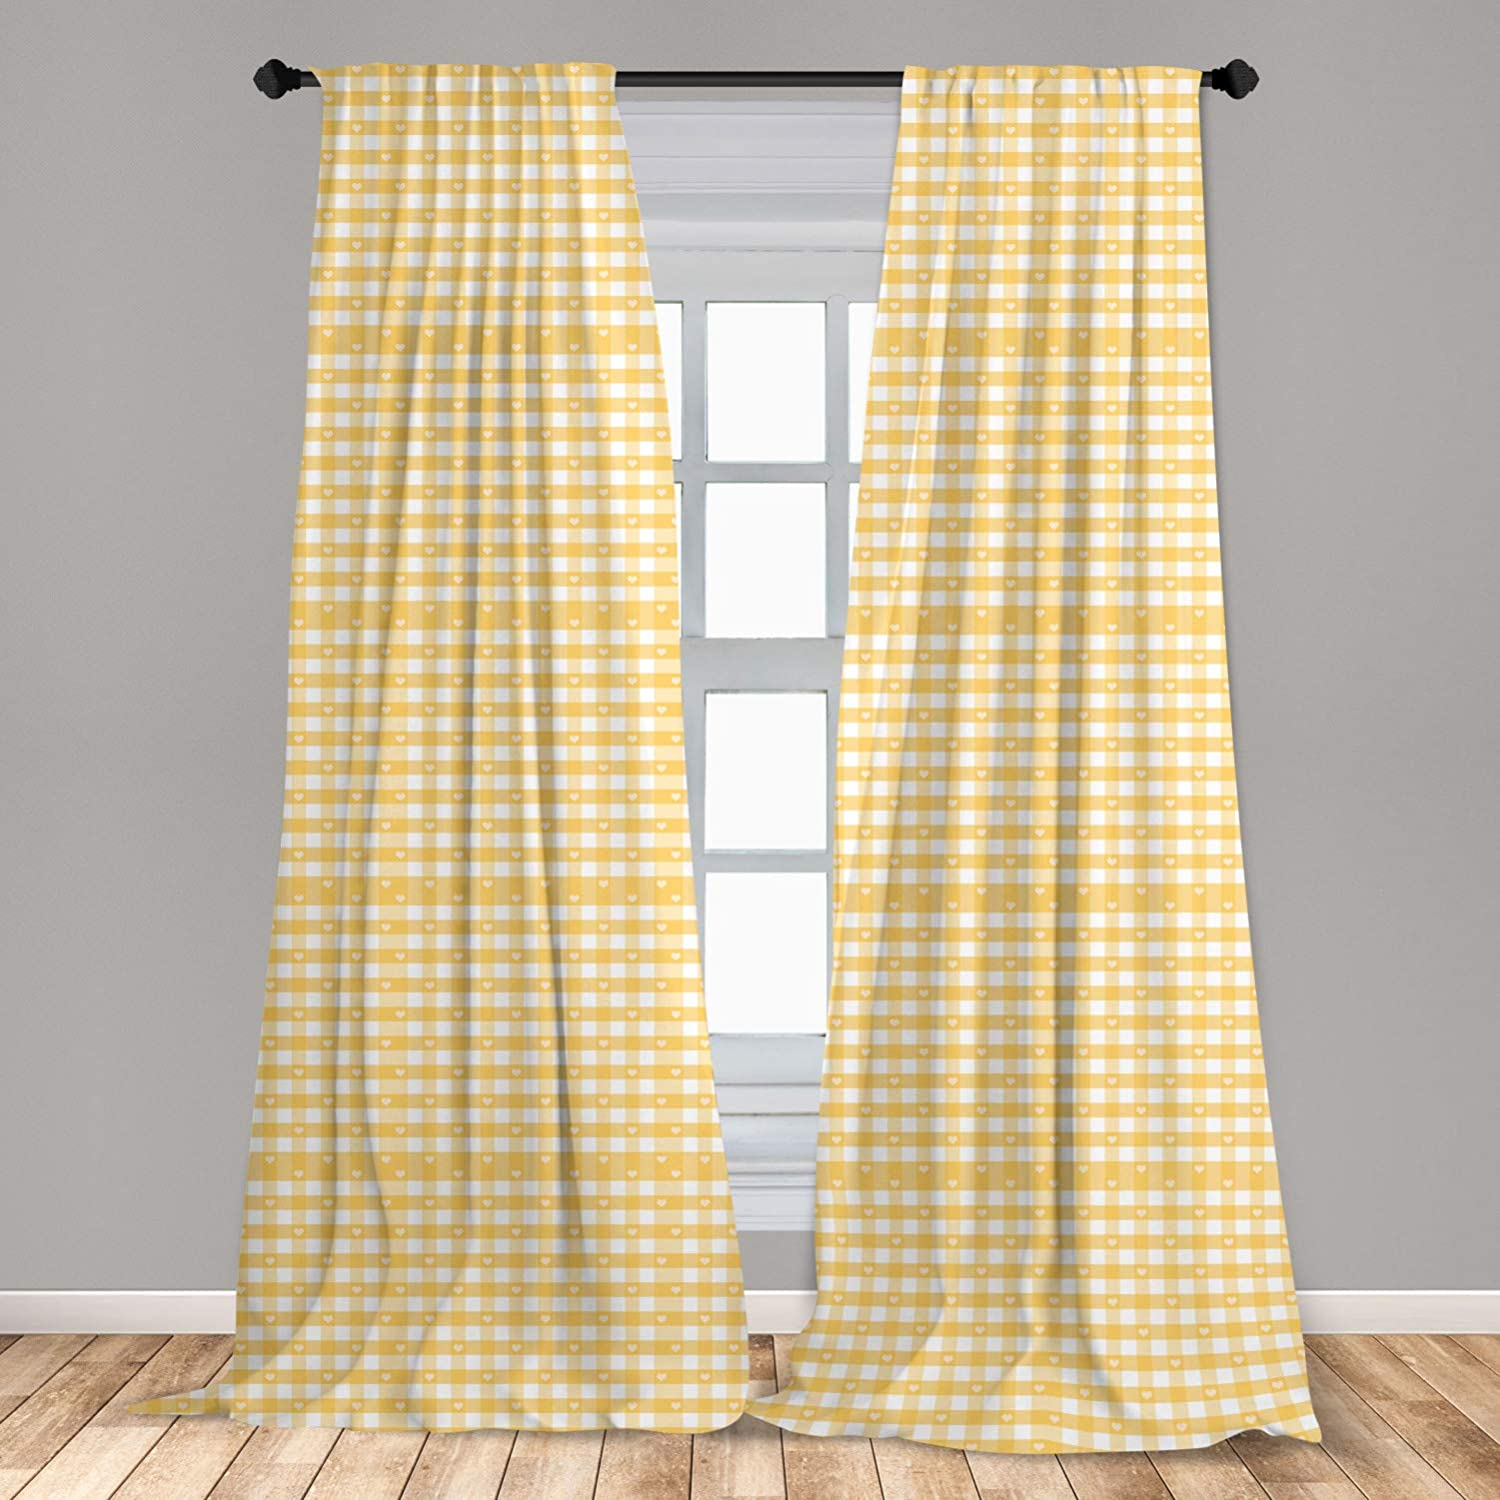 Ambesonne Vintage Window Curtains, Gingham Pattern with Bicolor Checkered Squares with Heart Shaped Motifs, Lightweight Decorative Panels Set of 2 with Rod Pocket, 56